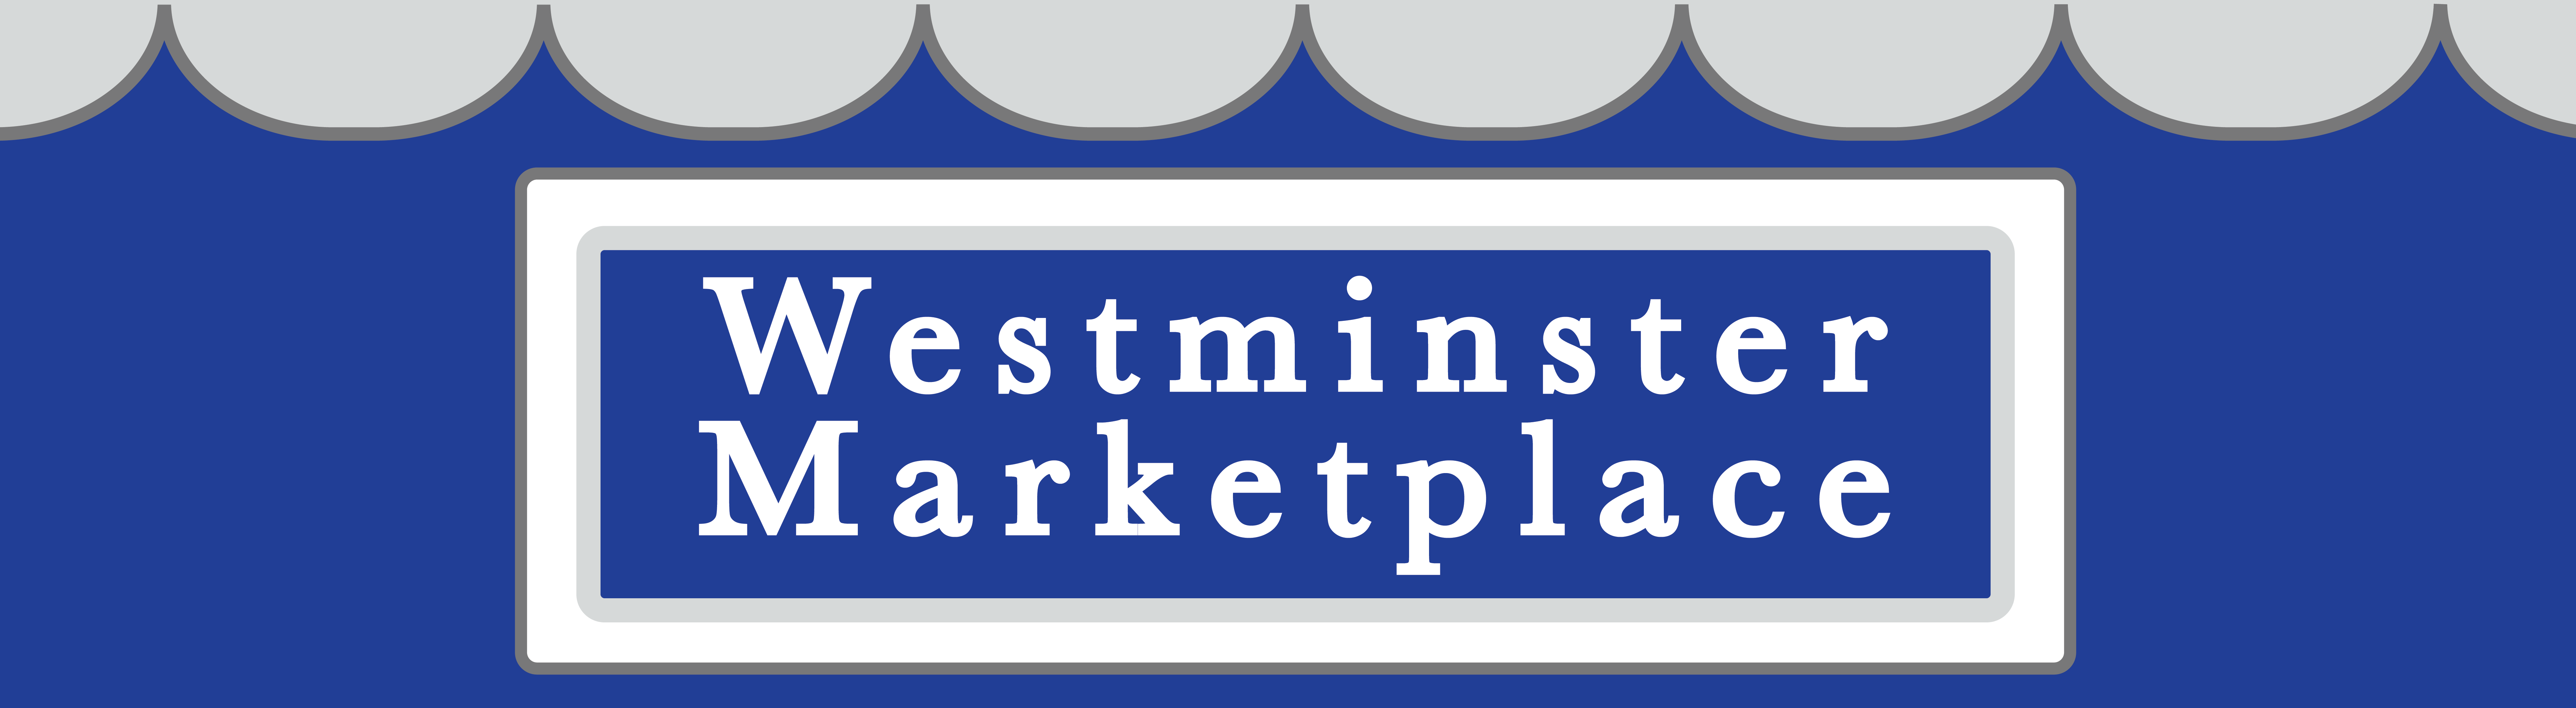 Marketplace Banner | Westminster